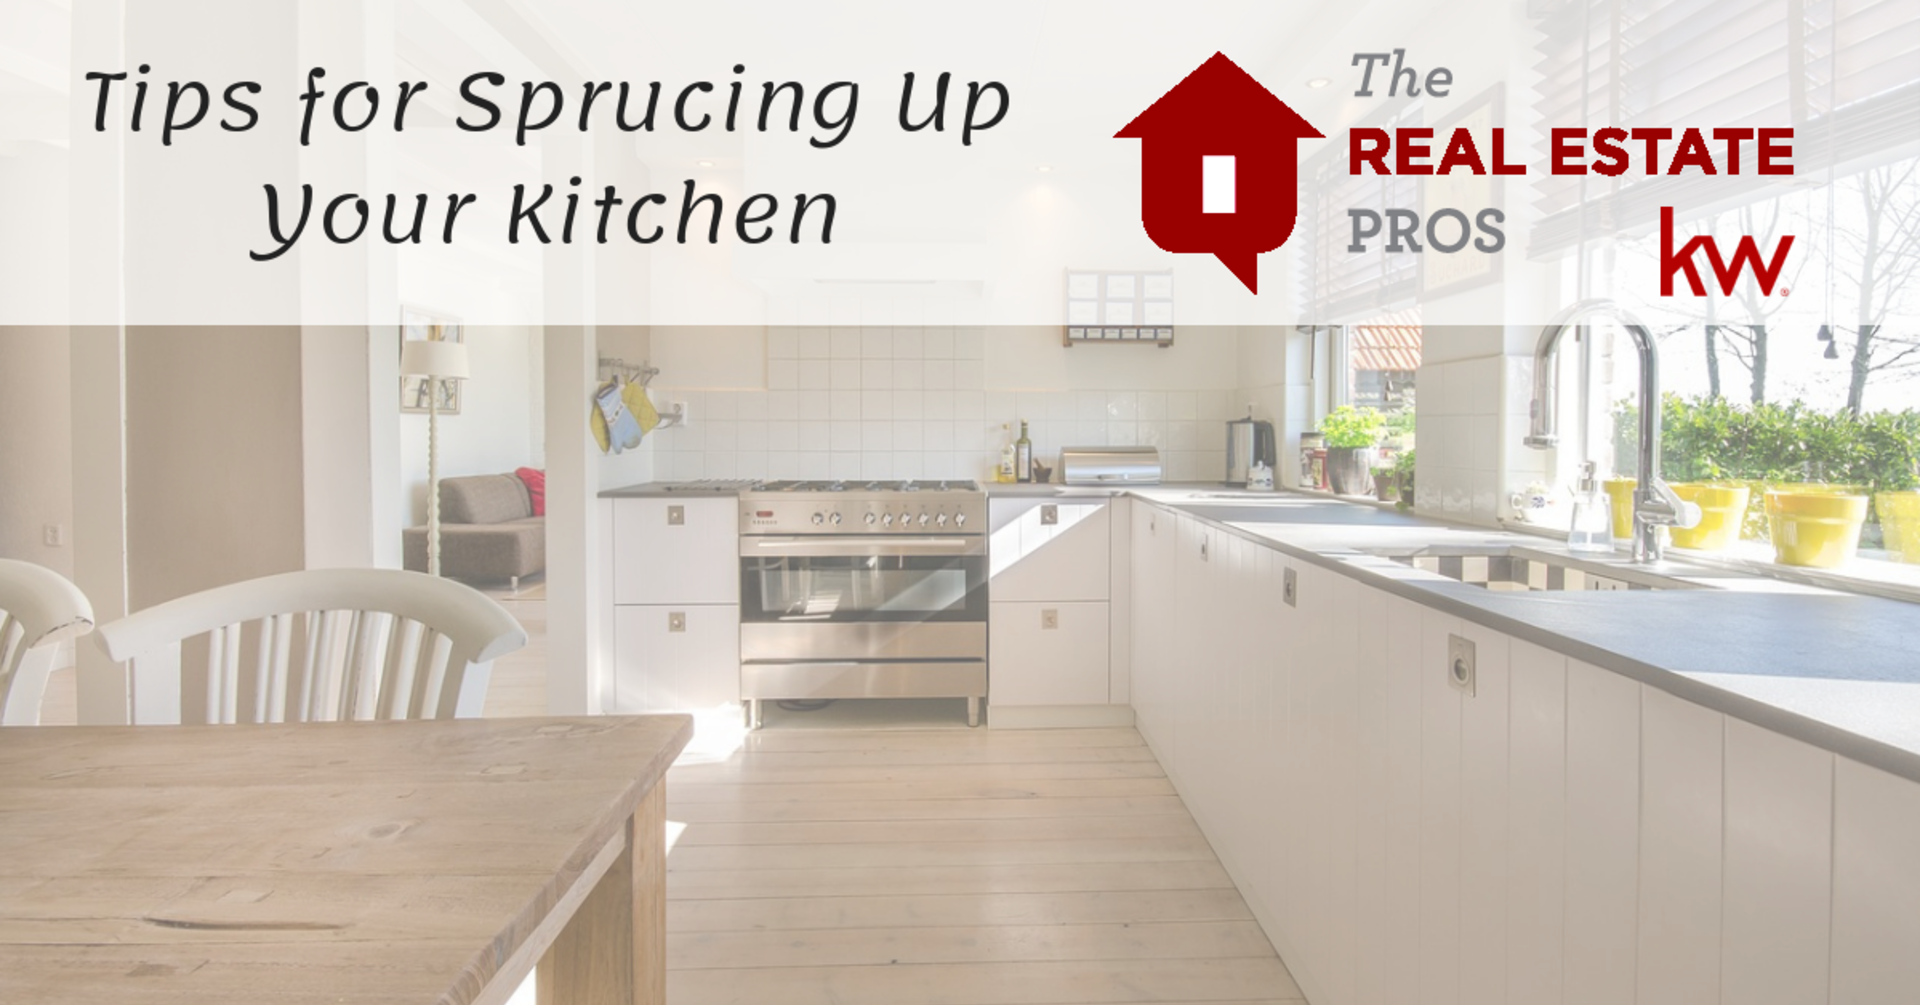 Tips for Sprucing Up Your Kitchen